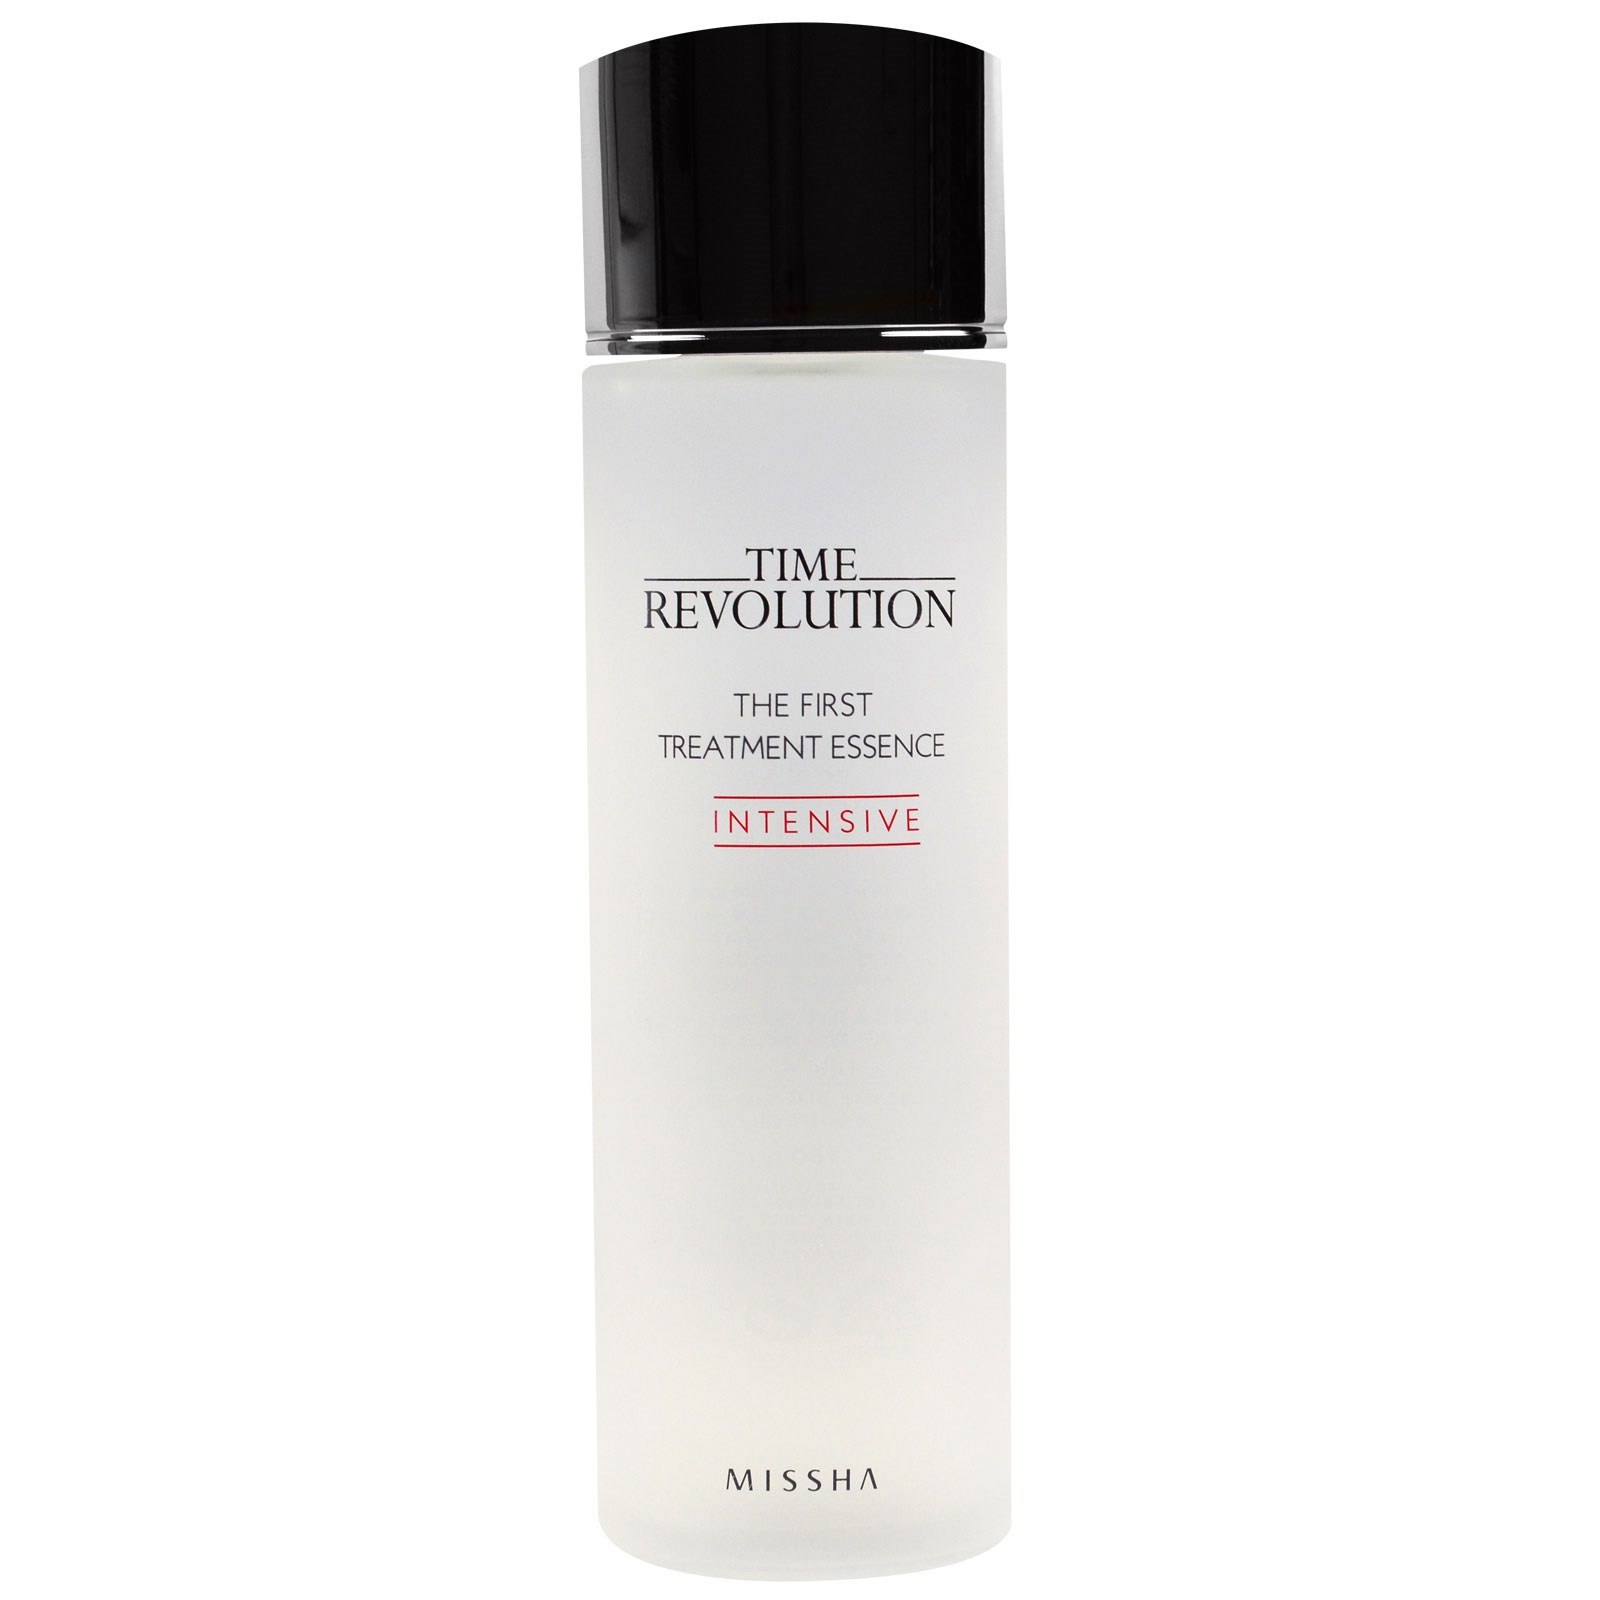 [Missha] Time Revolution The First Treatment Essence 150ml